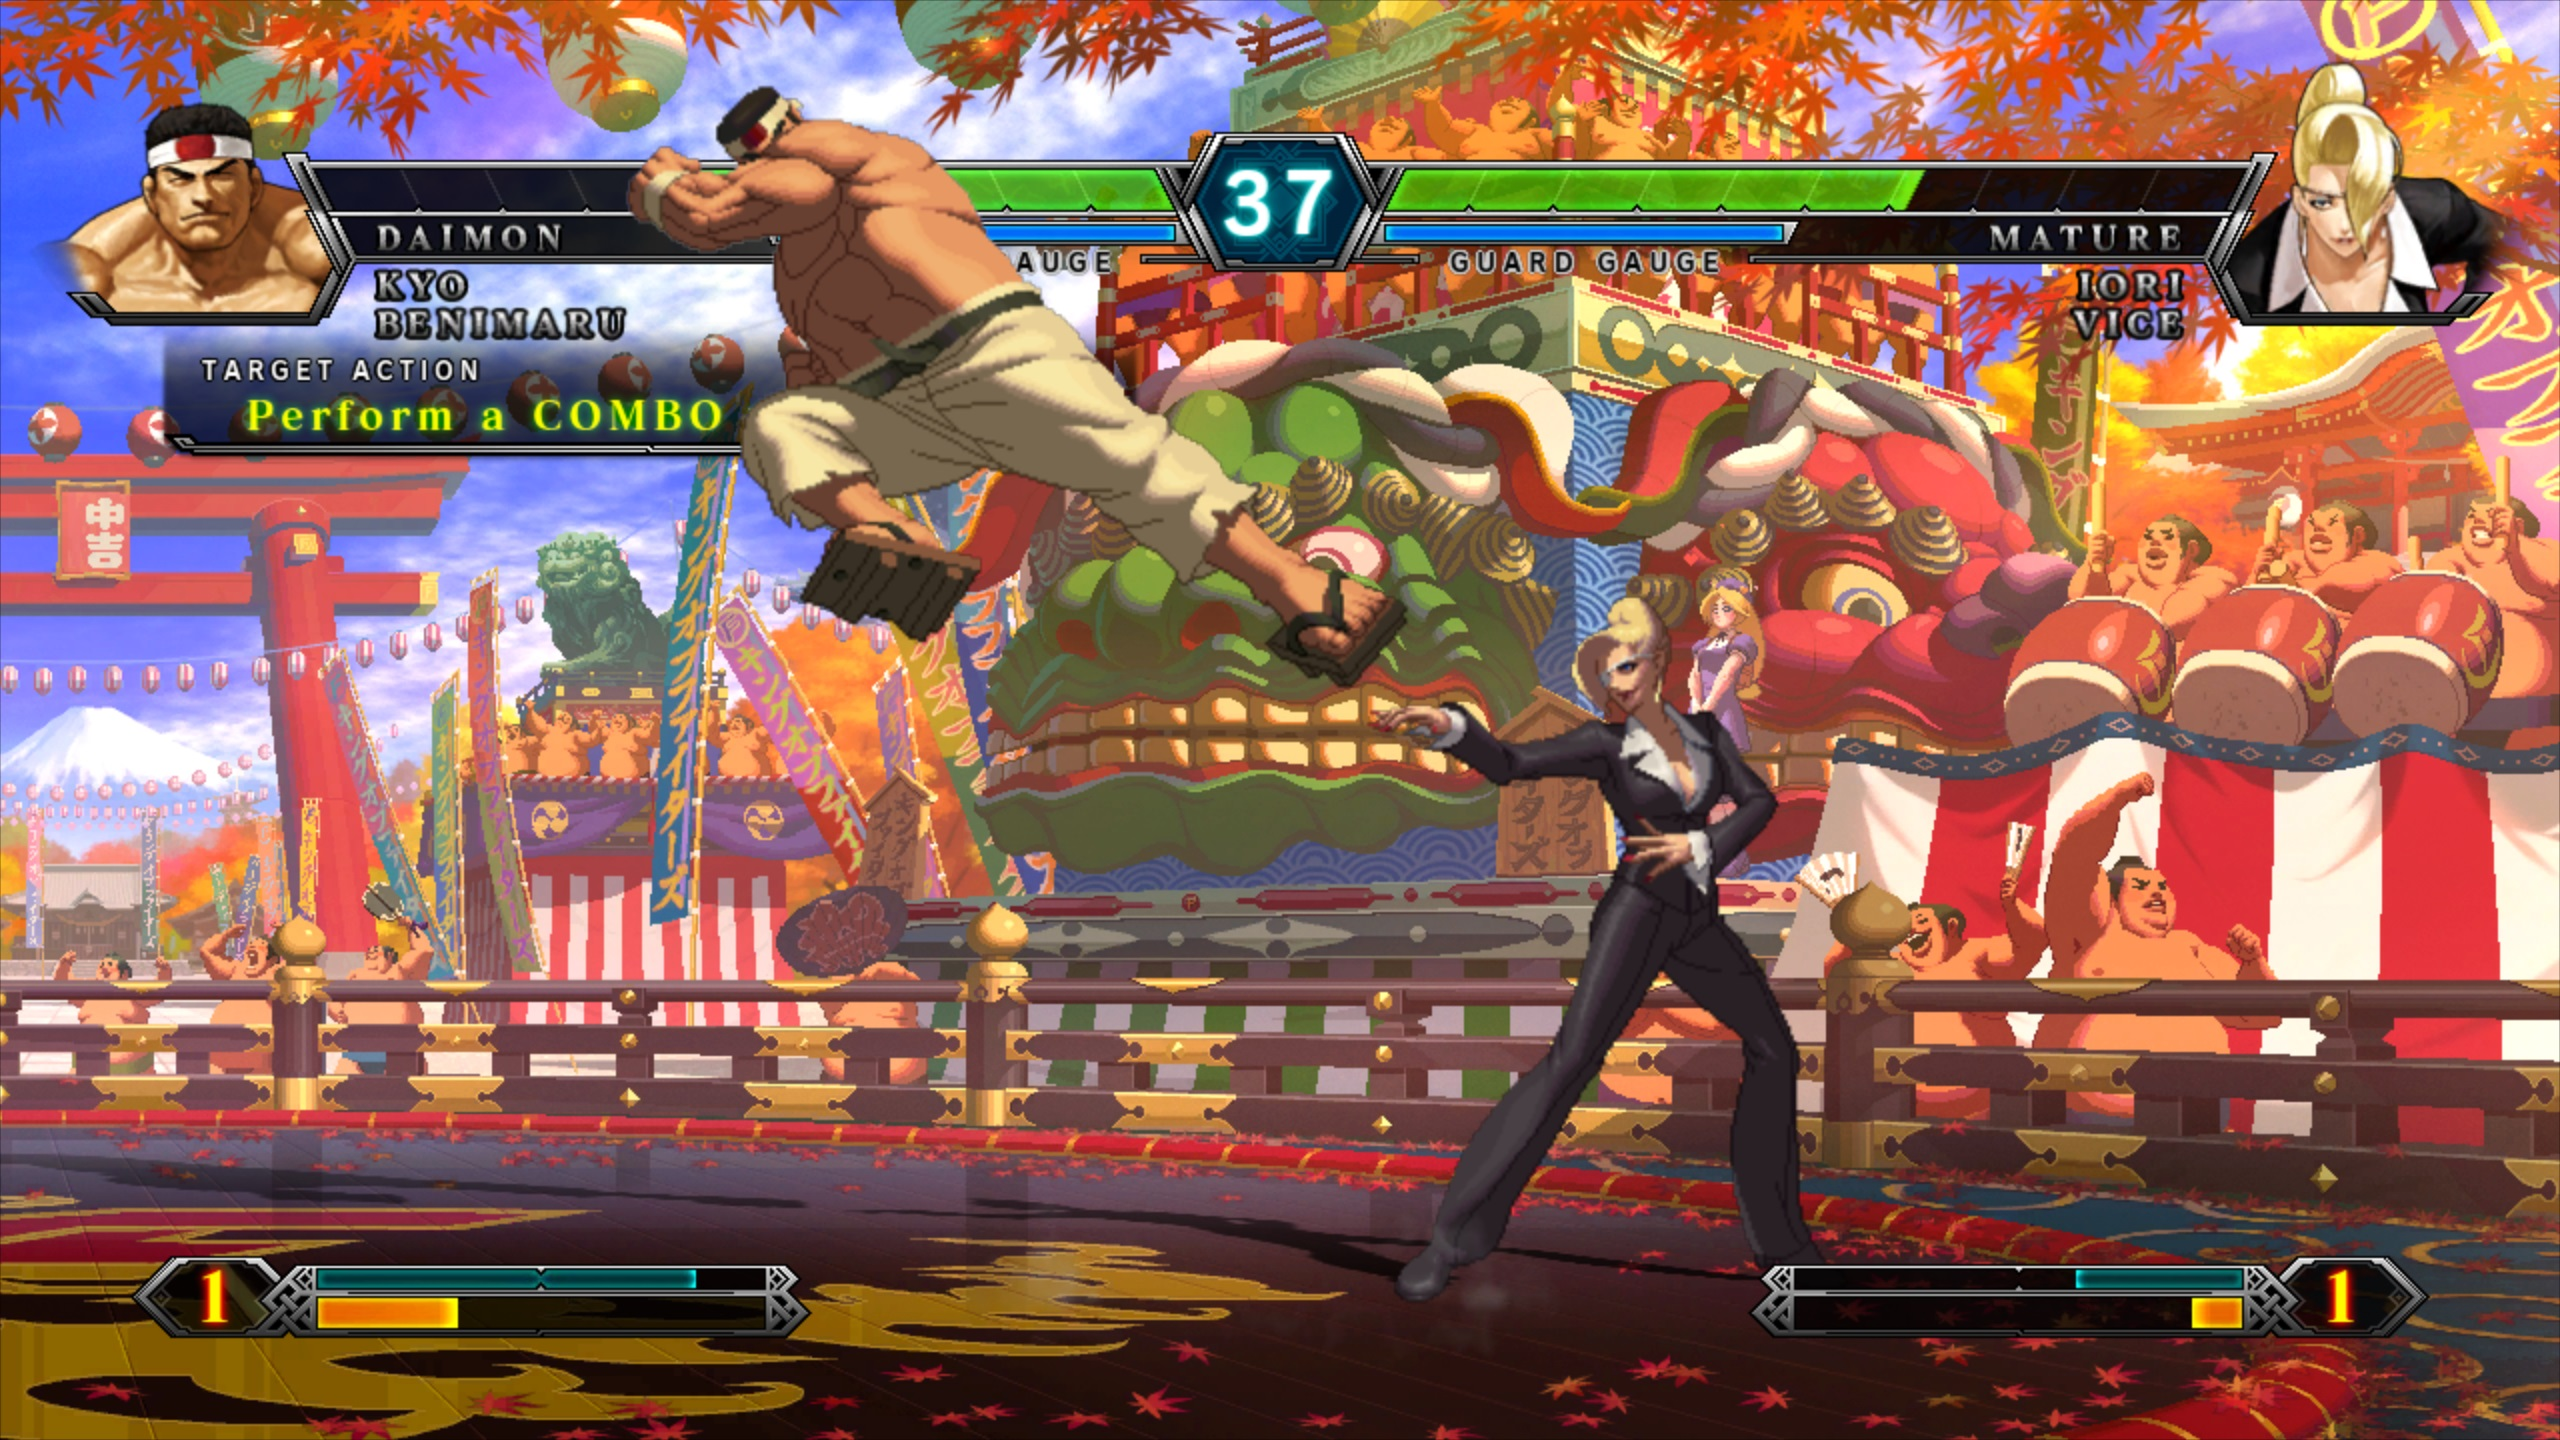 A large muscular masc looking person performing a downward kick onto a femme looking person in a suit who has her hands raised. Two progress bars sit at the top of the screen, and two bars sit at the bottom. Text reads 'Perform a combo'.